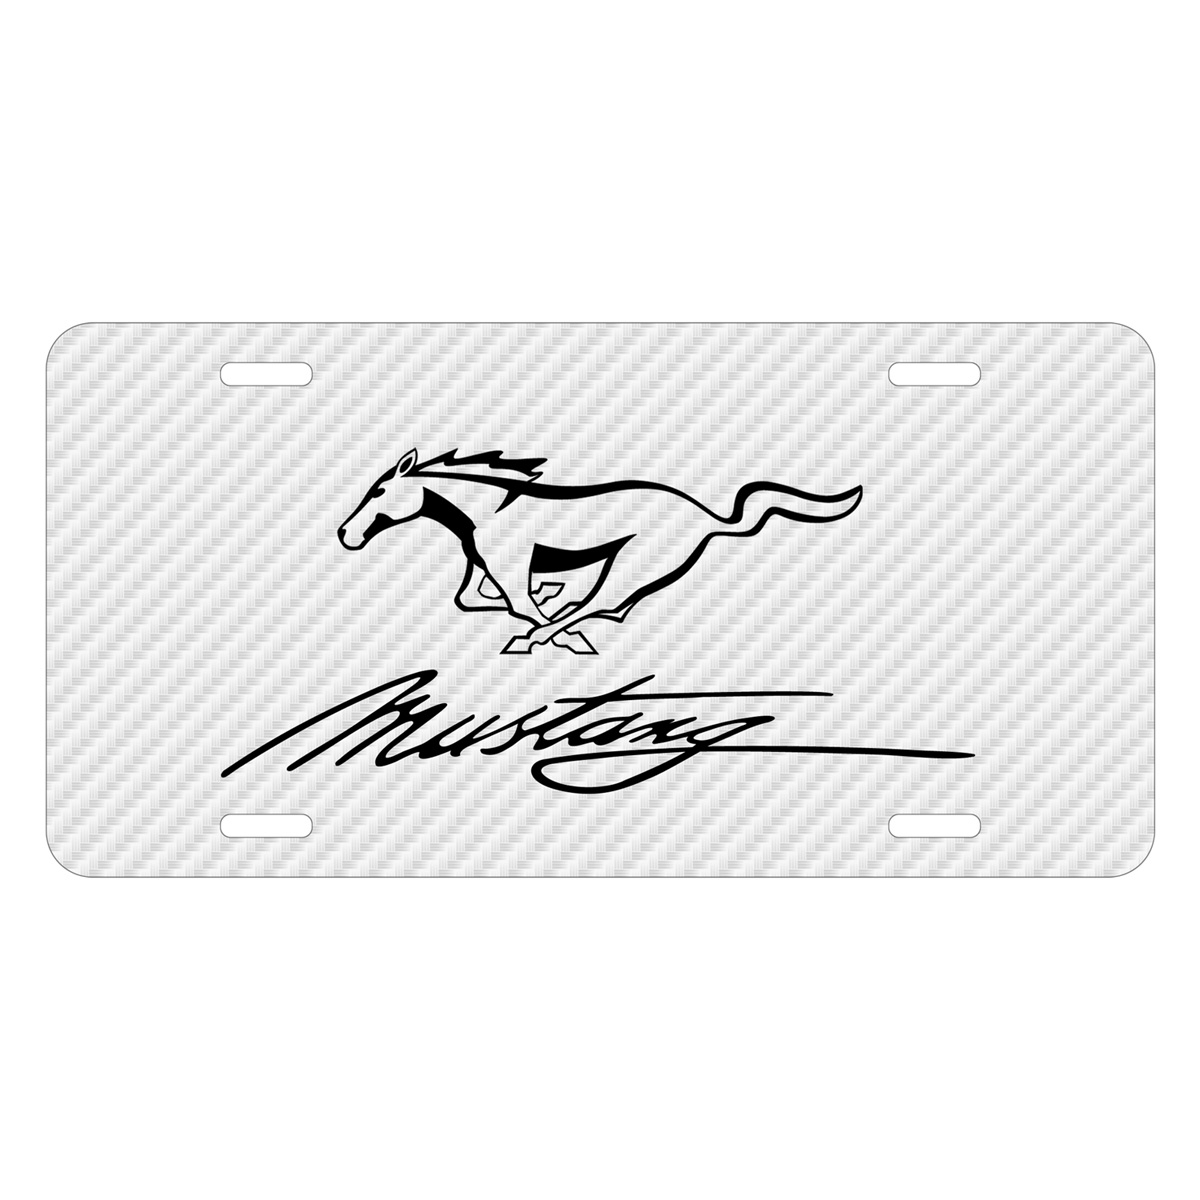 Ford Mustang Script White Carbon Fiber Texture Graphic UV Metal License Plate